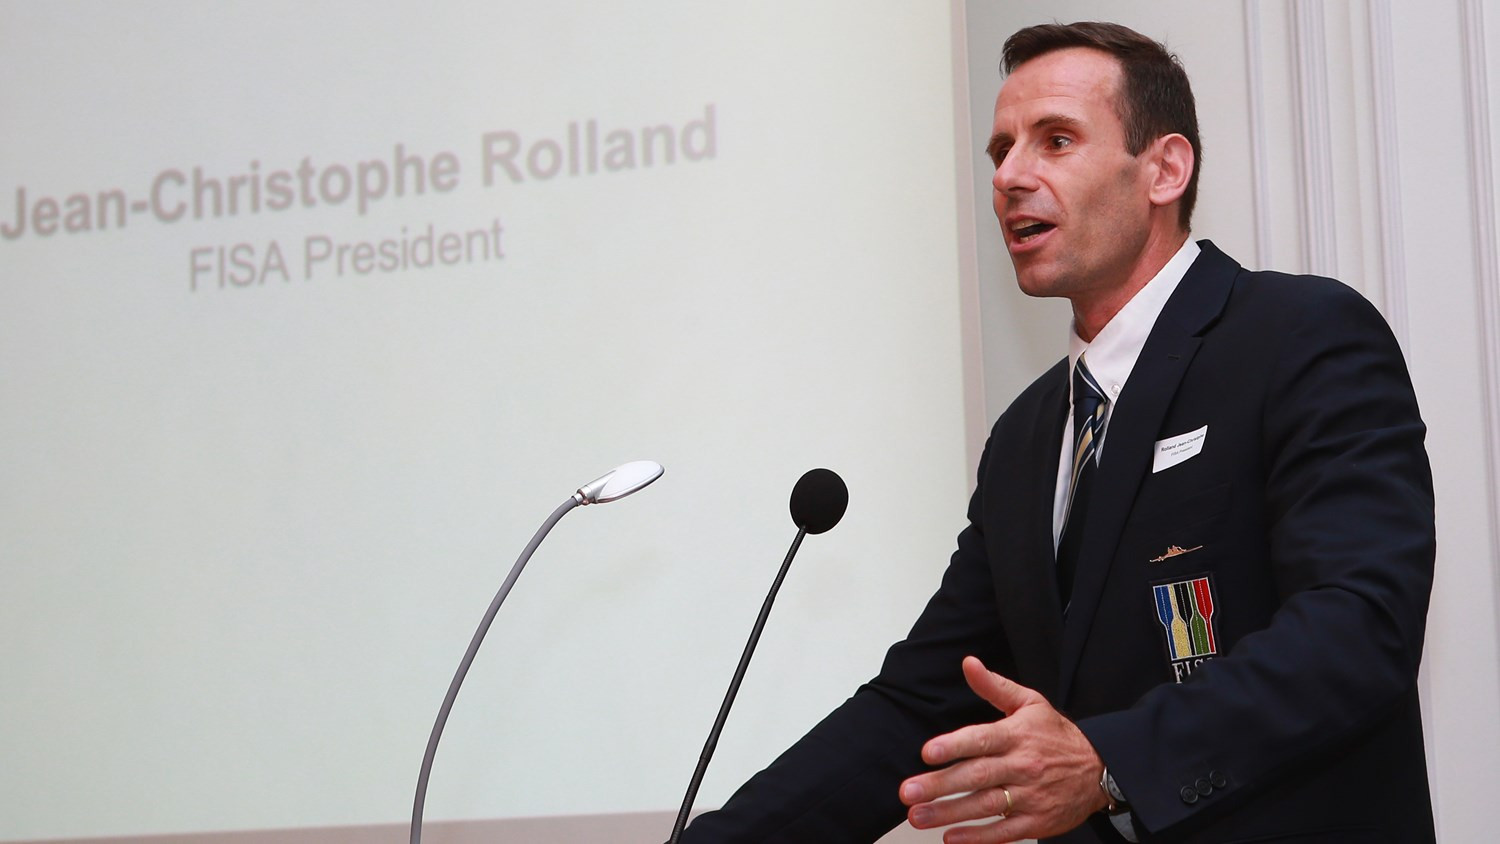 """World Rowing President Jean-Christophe Rolland has admitted that the organisation is """"highly dependent"""" on Olympic revenue © FISA/Igor Meijer"""